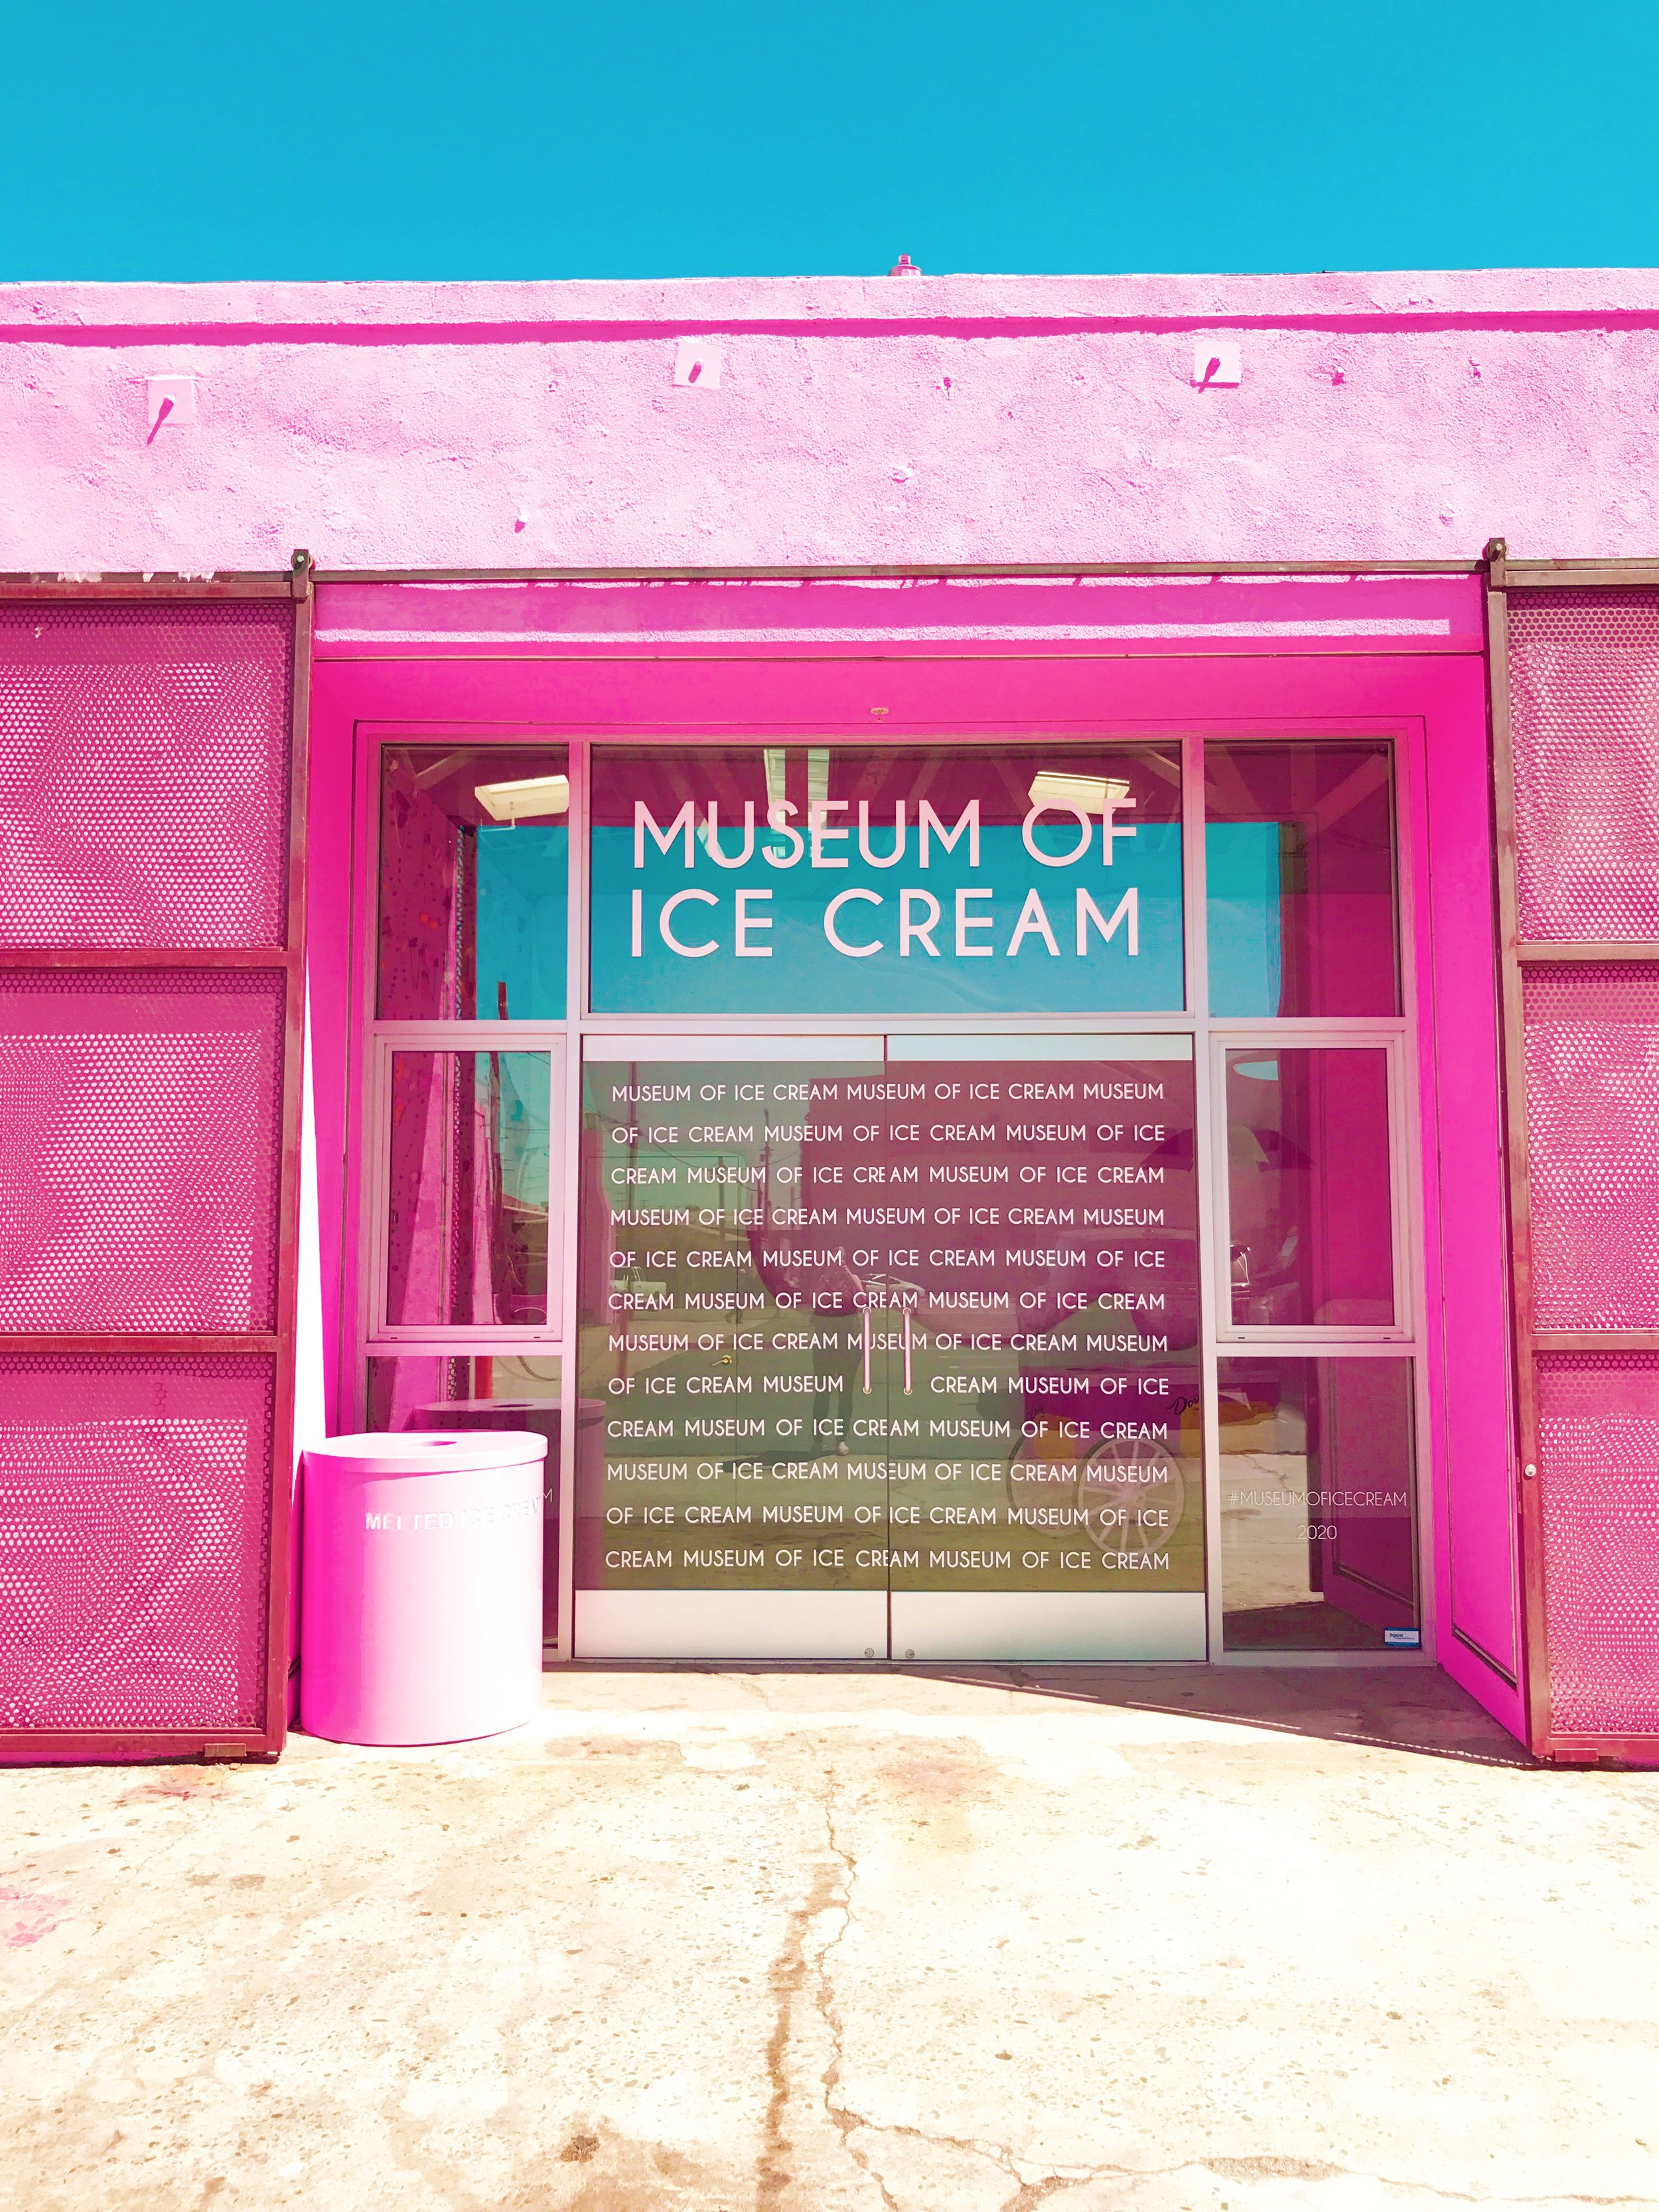 Museum of Ice Cream - Pink Main Entrance